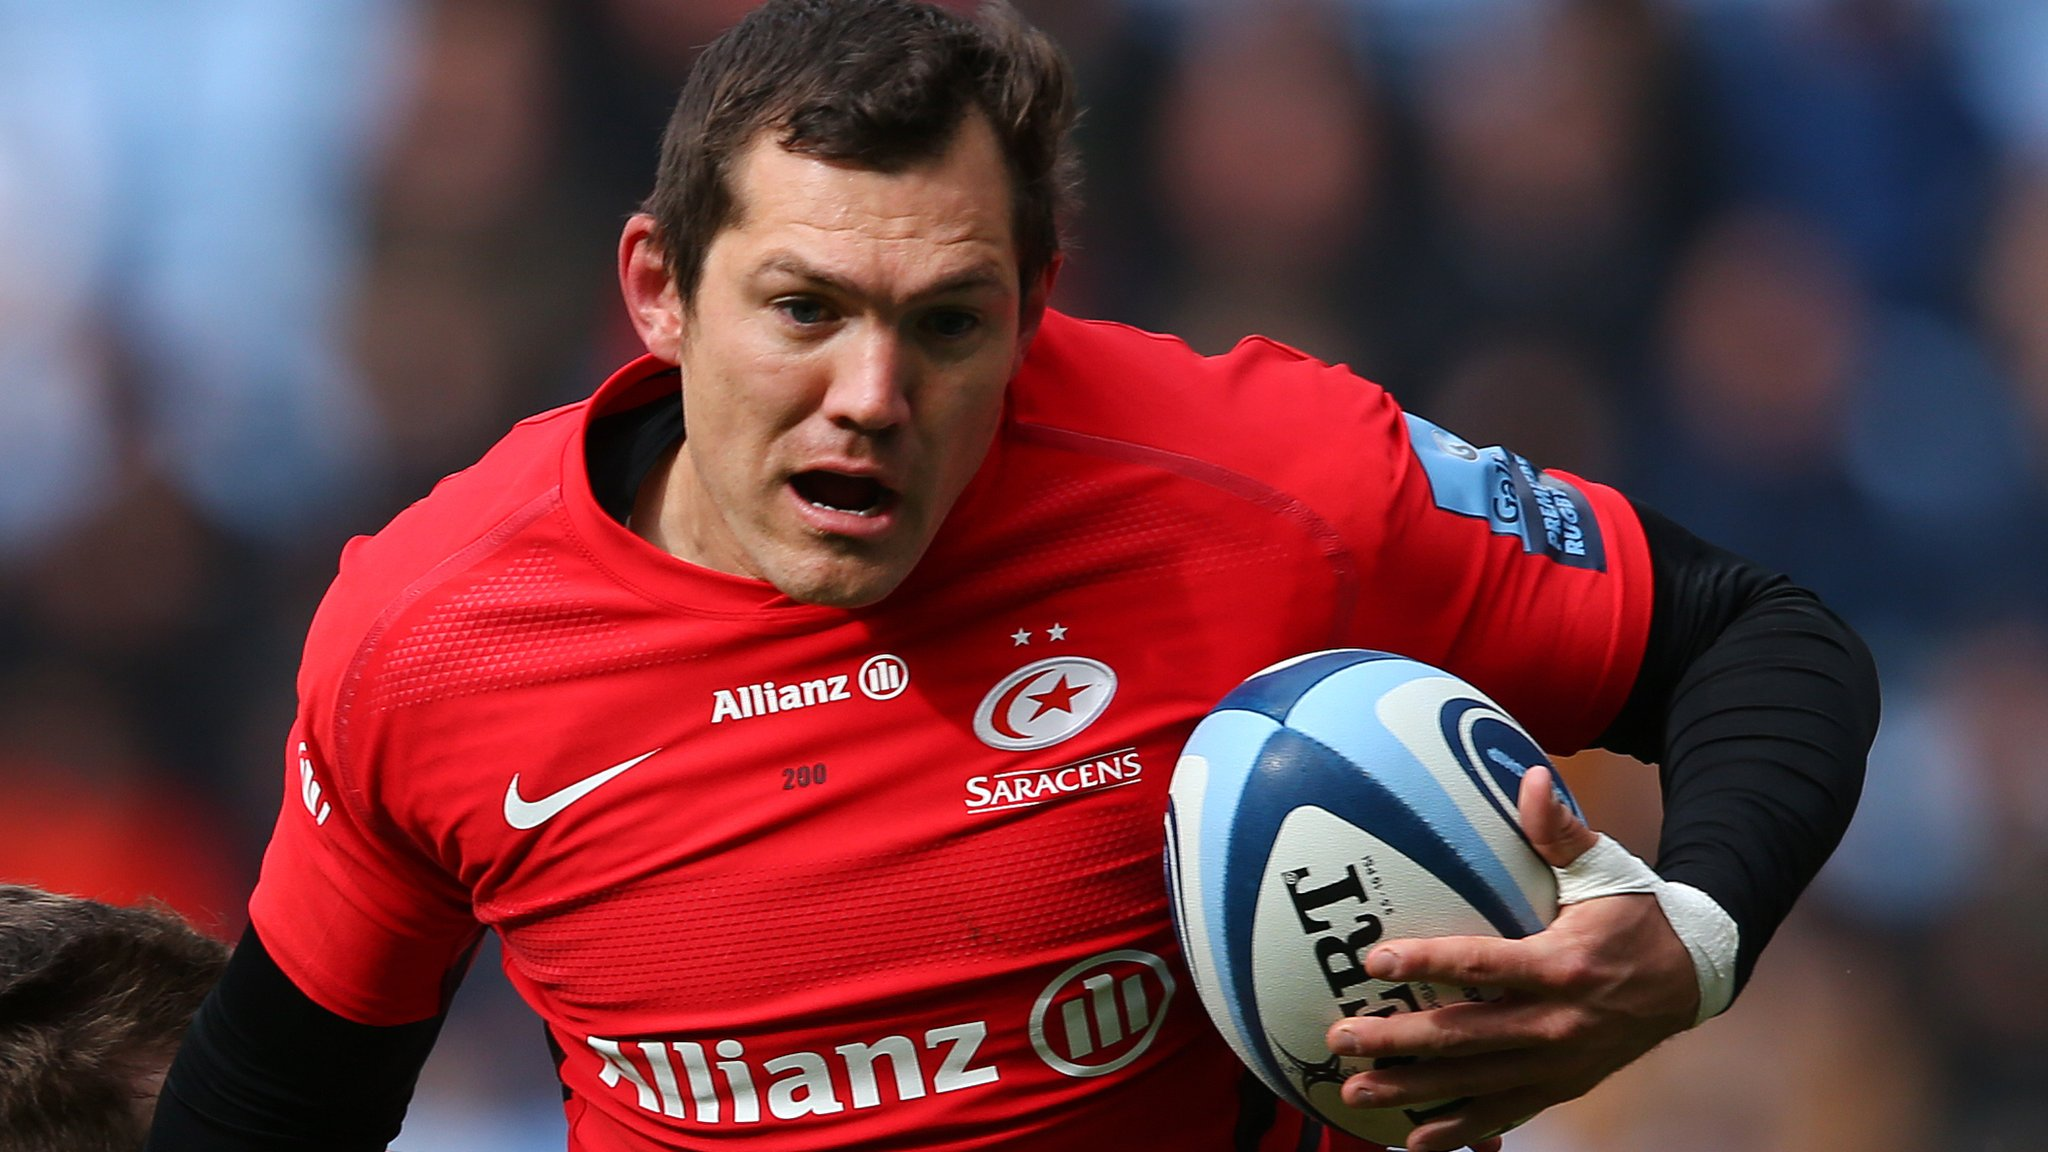 Saracens & Gloucester stars back for semi-final